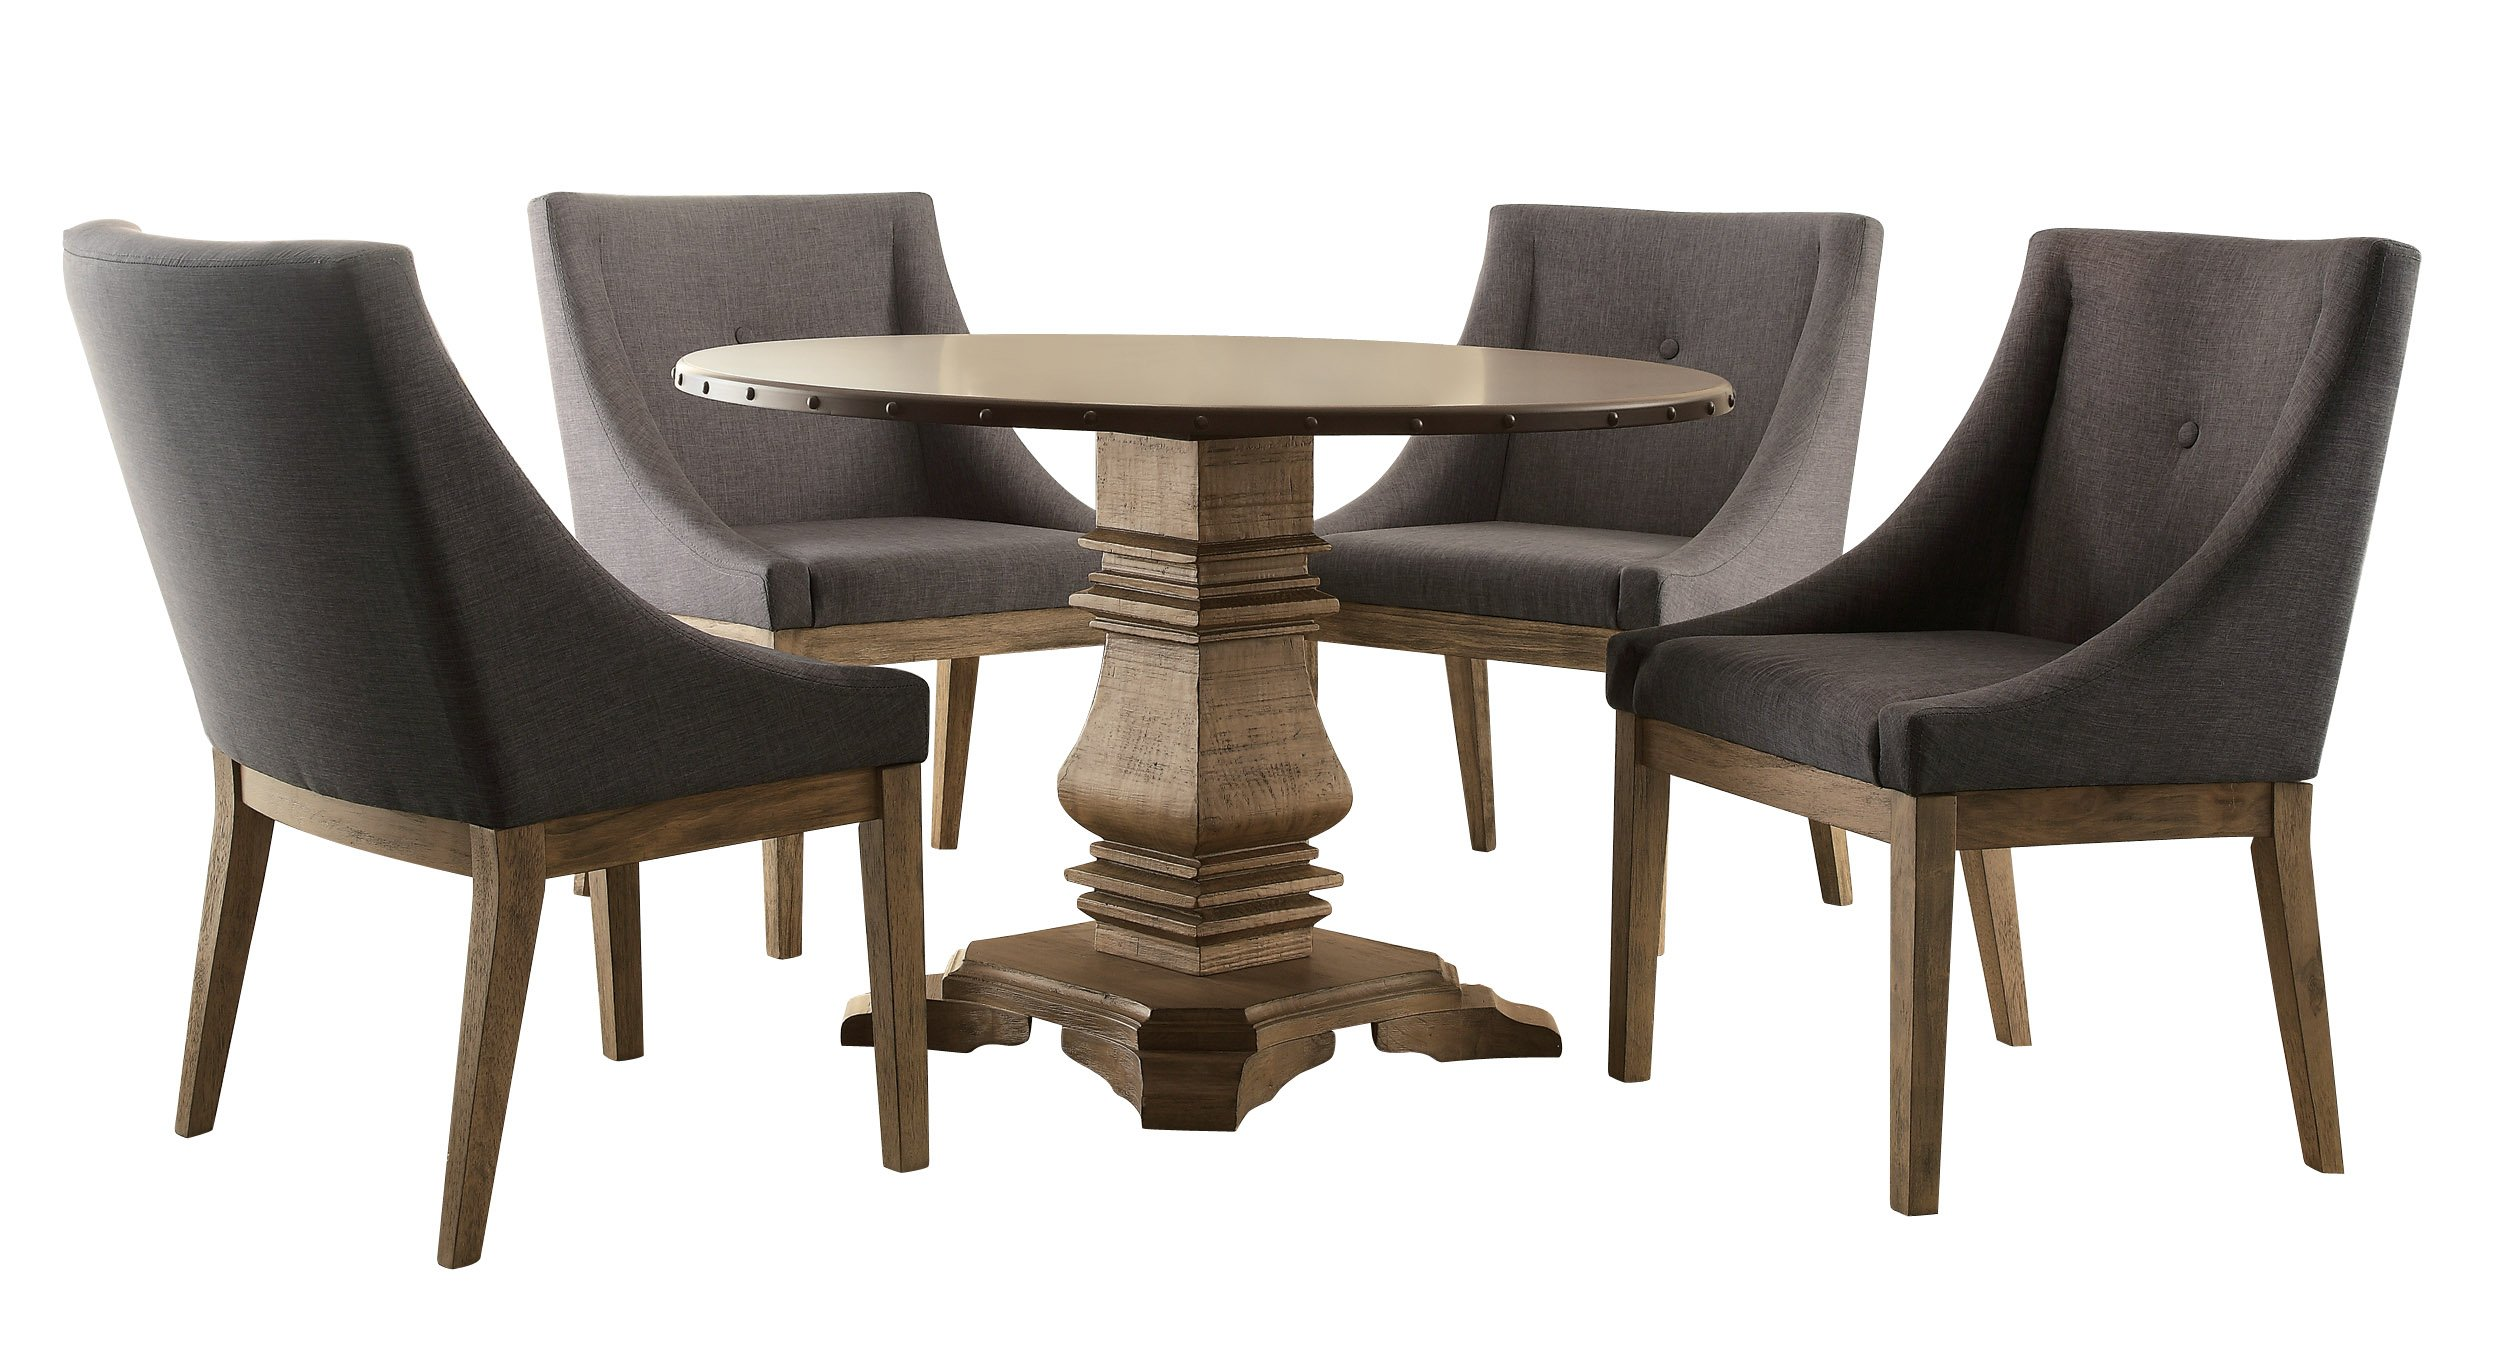 Homelegance Anna Claire 5-Piece Dining Set Round Pedestal Dining Table and 4 Center Button Tufted Curved Arm Design Chairs